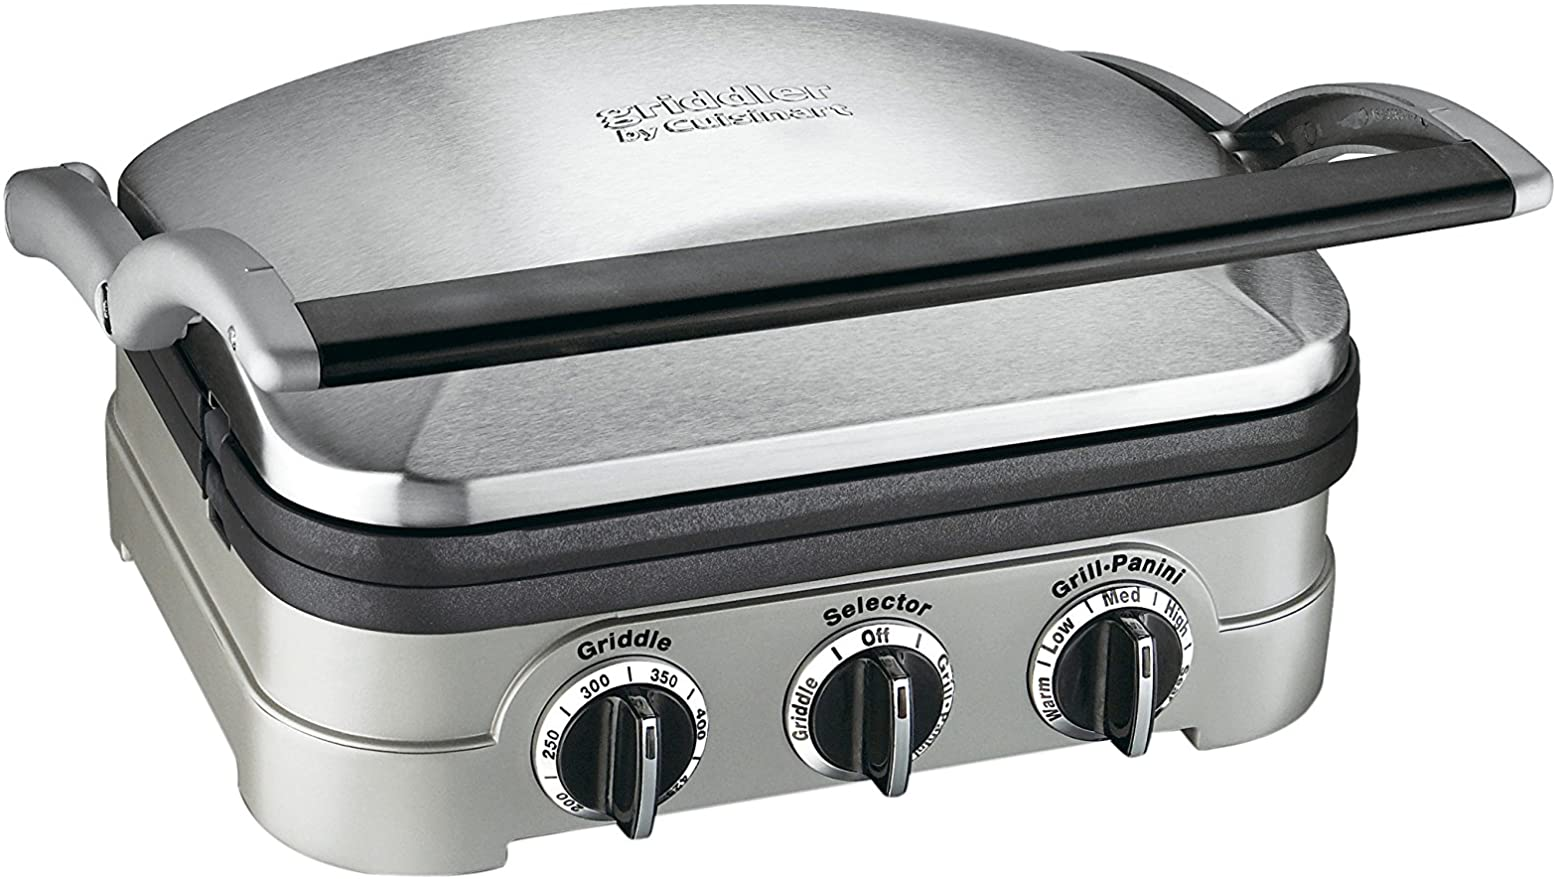 Cuisinart GR-4NP1 product image 1